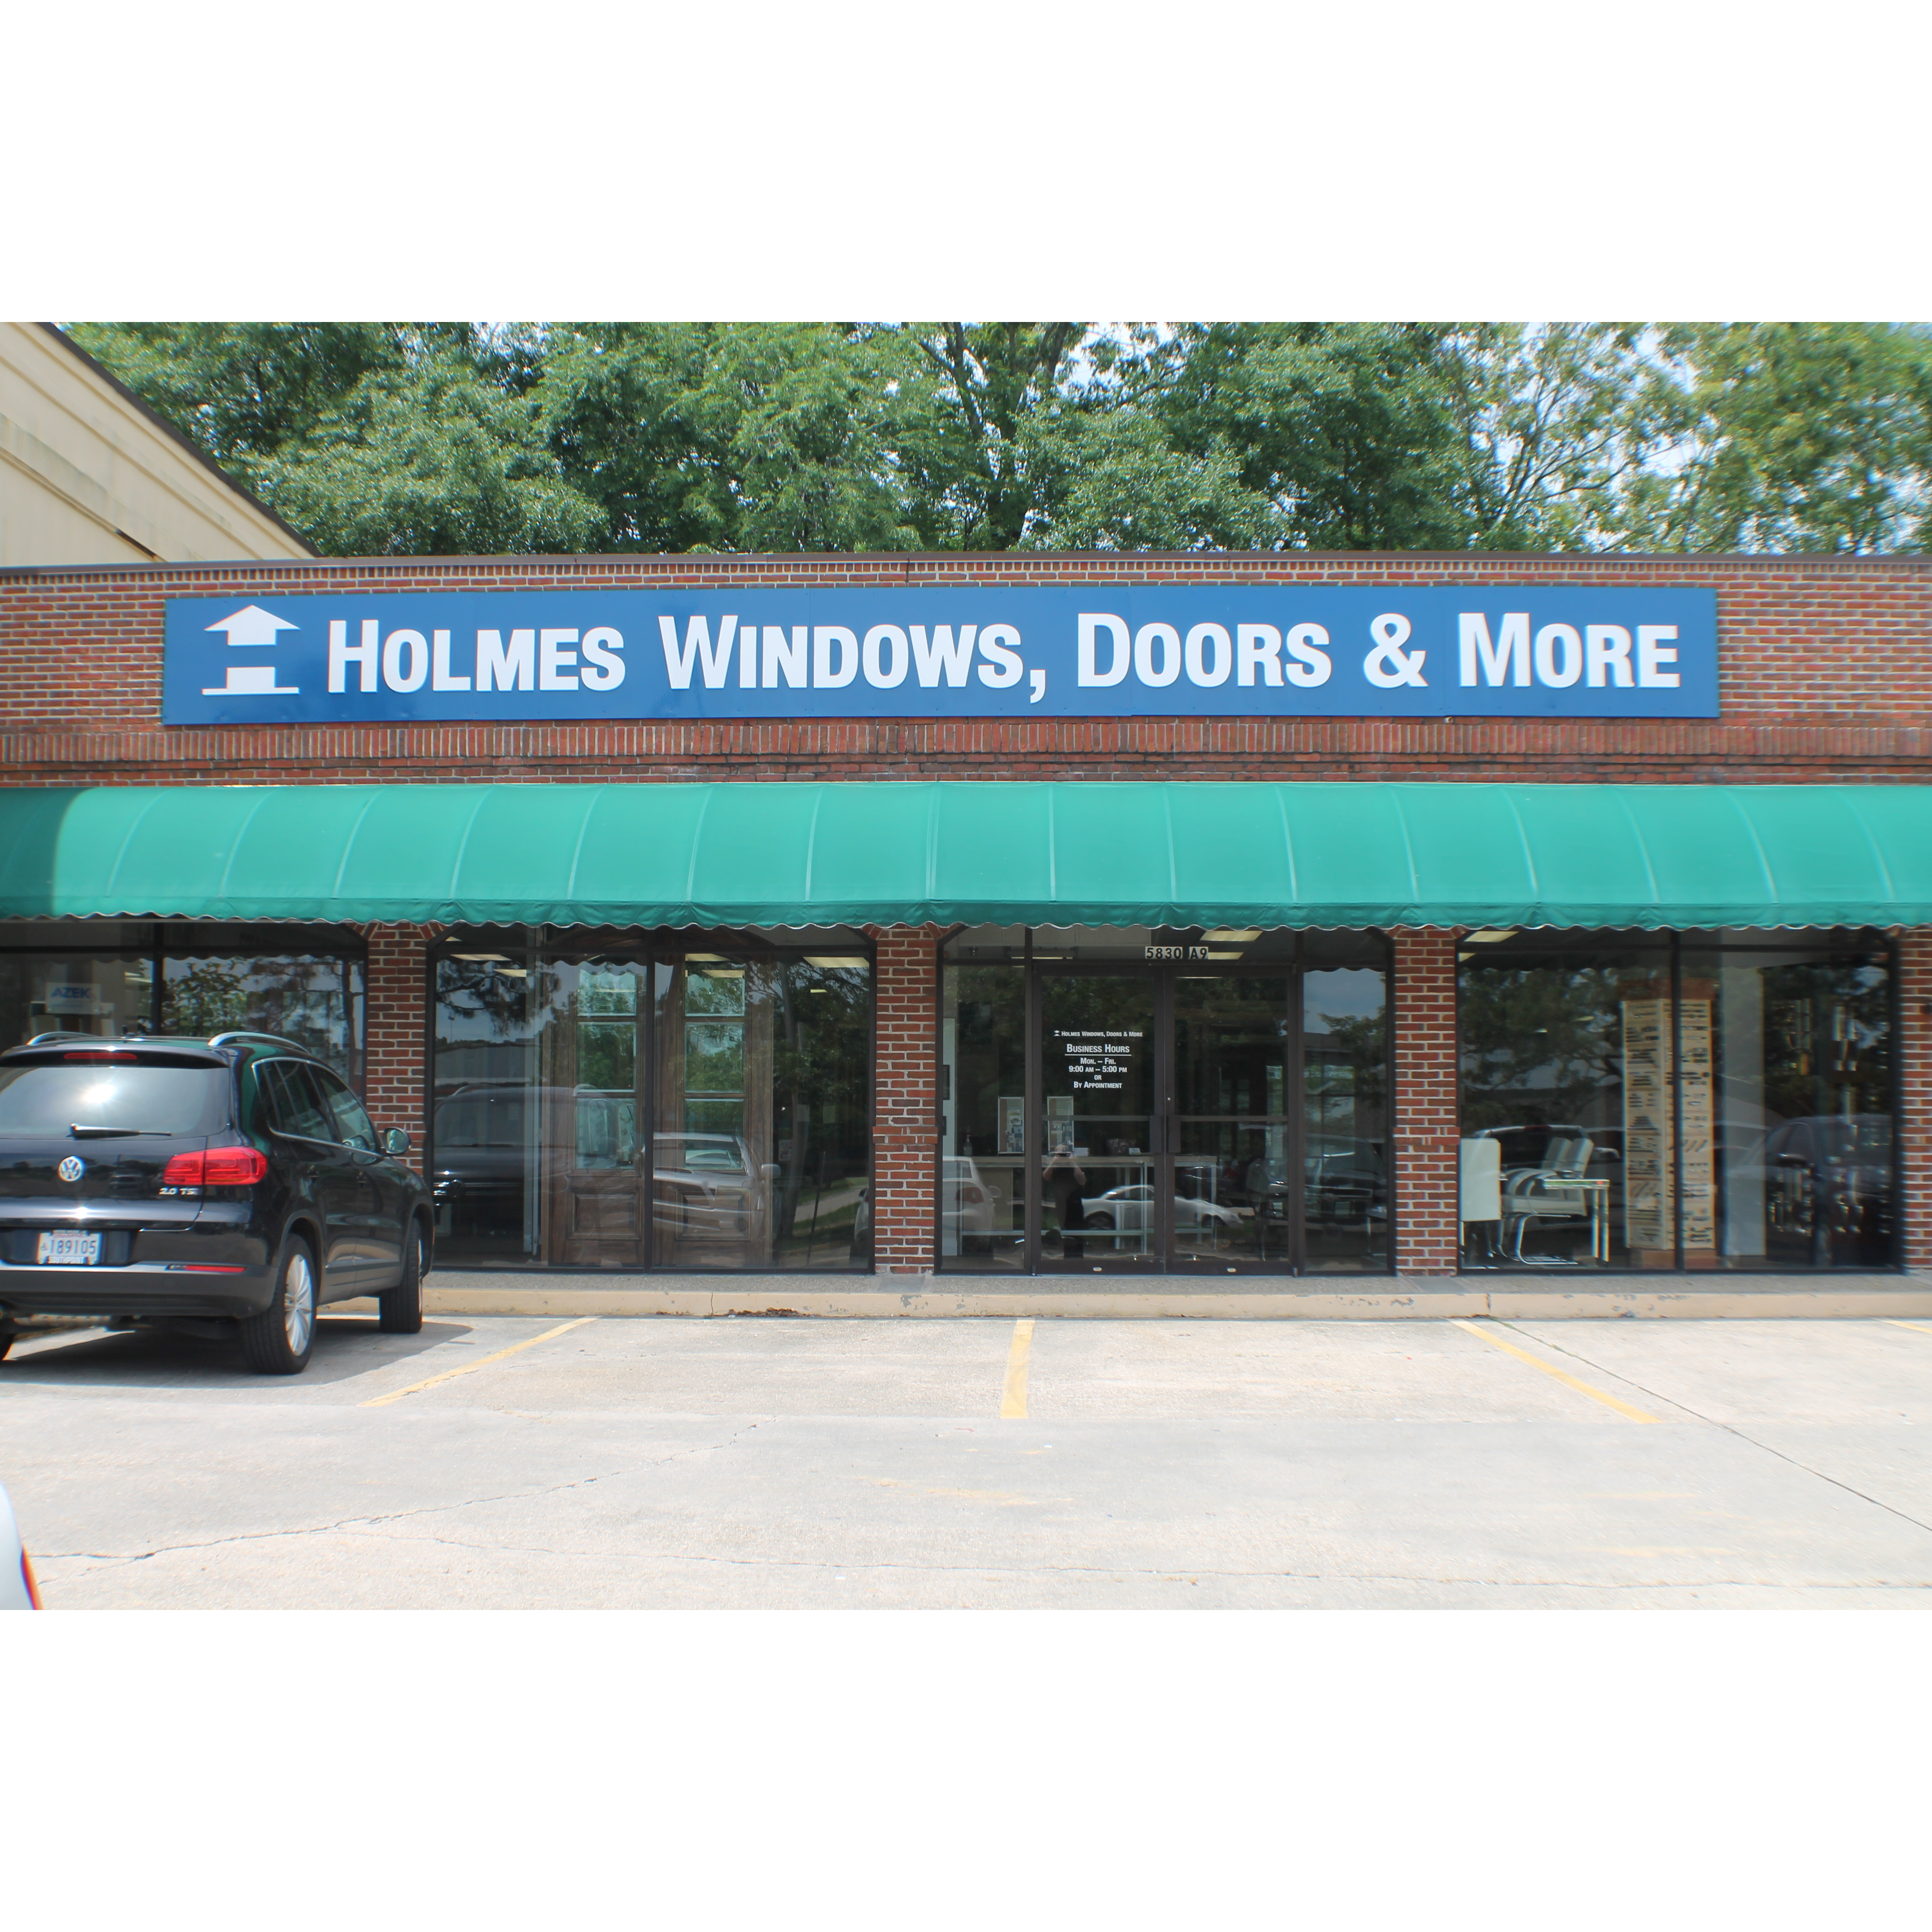 Holmes Windows Doors & More image 6